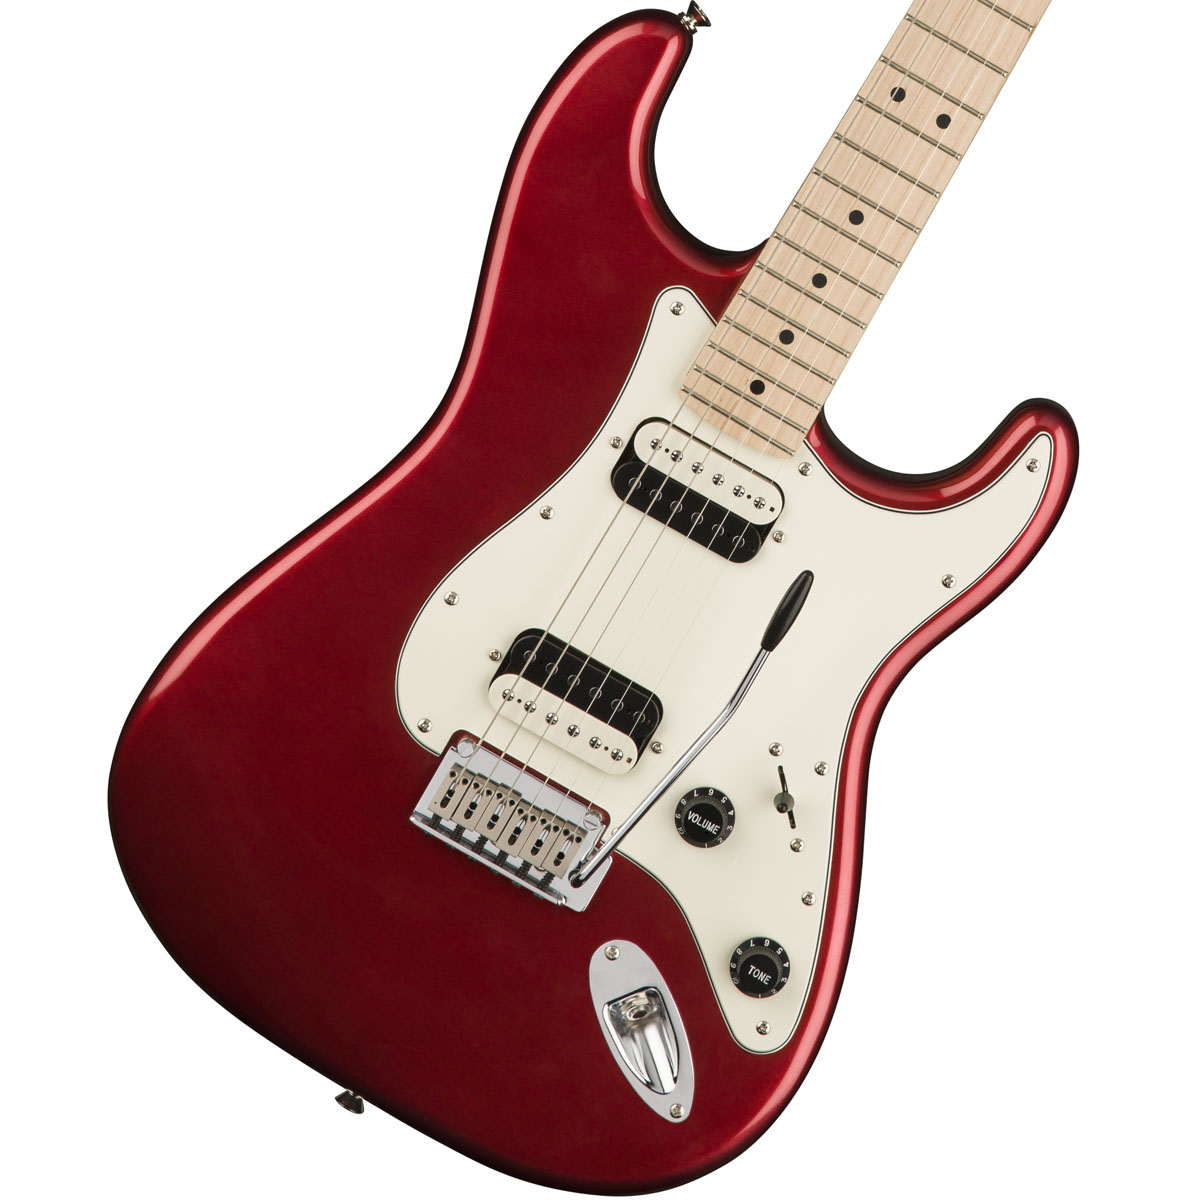 Squier by Fender / Contemporary Stratocaster HH Dark Metallic Red Maple